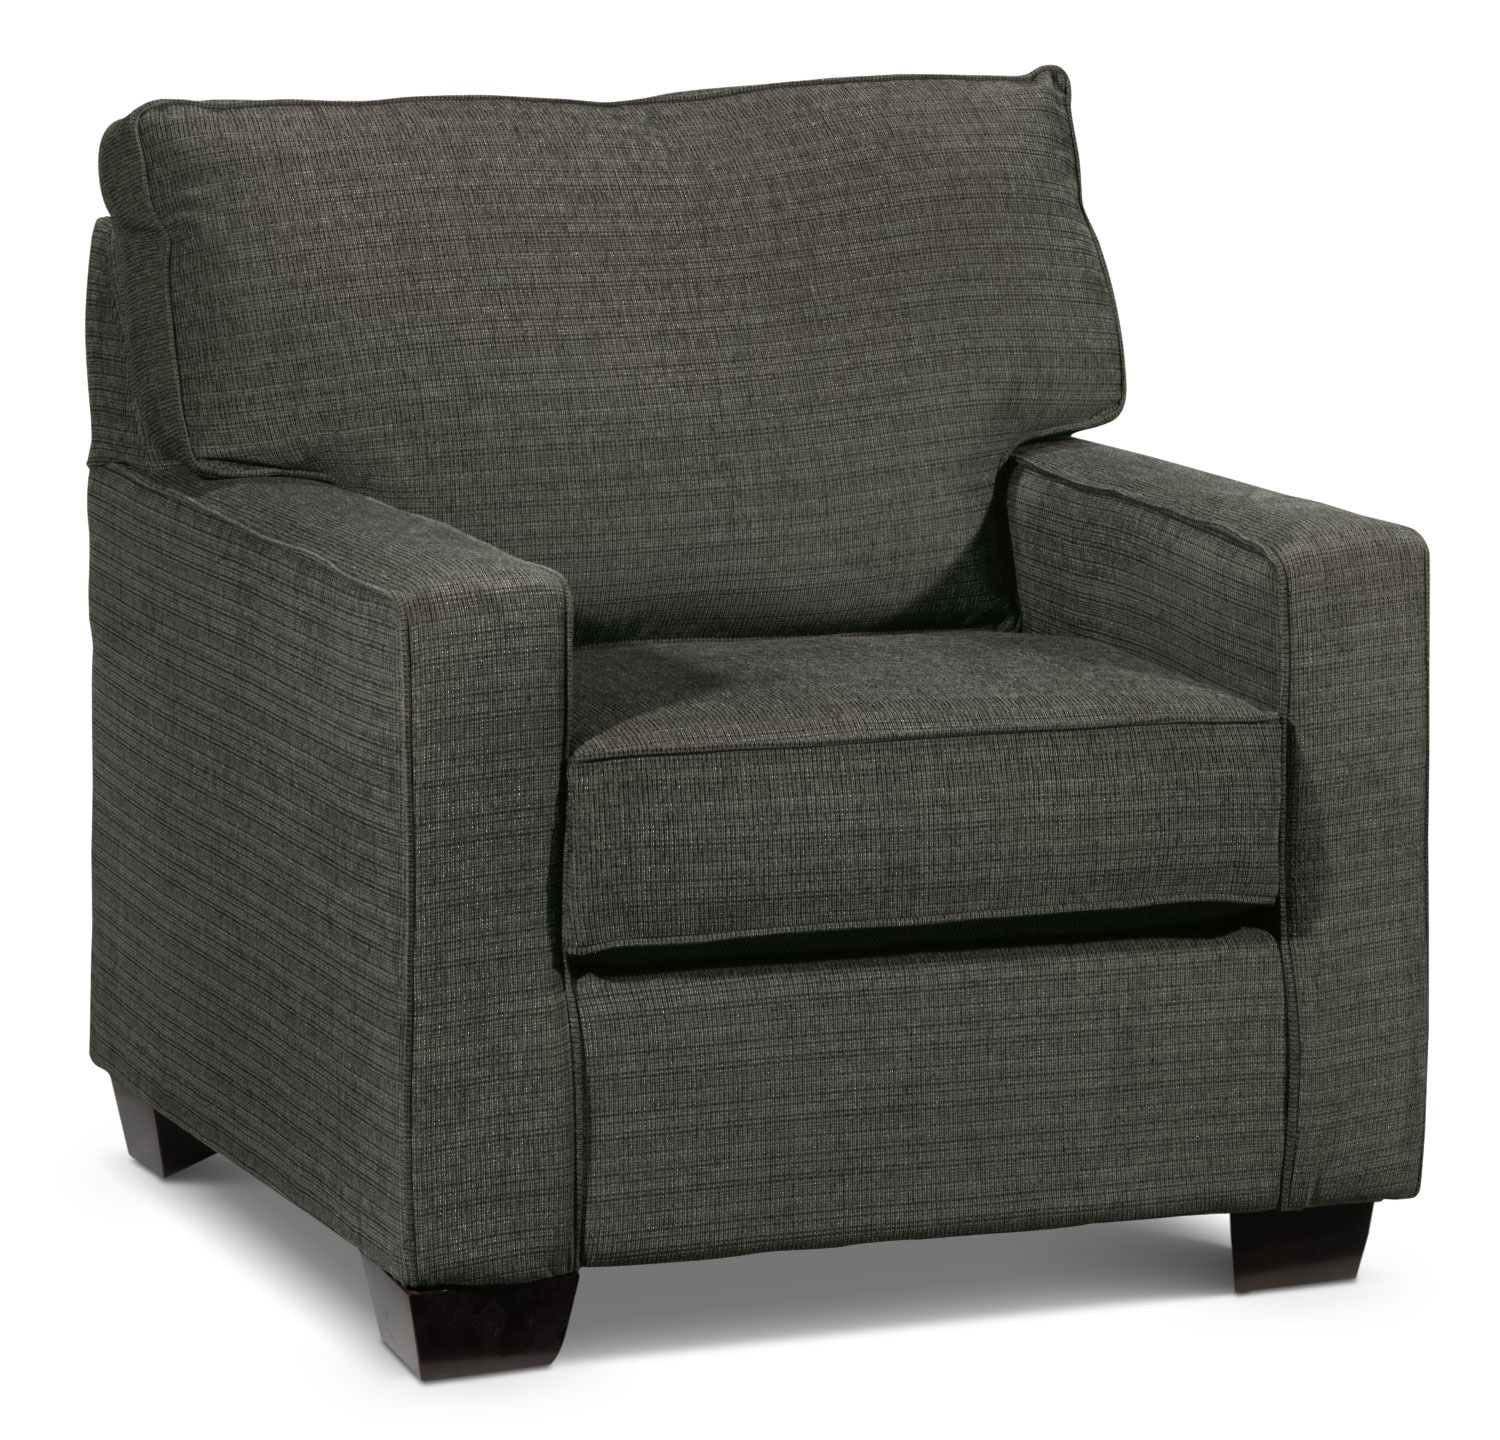 Living Room Furniture - Perkin Chair - Graphite